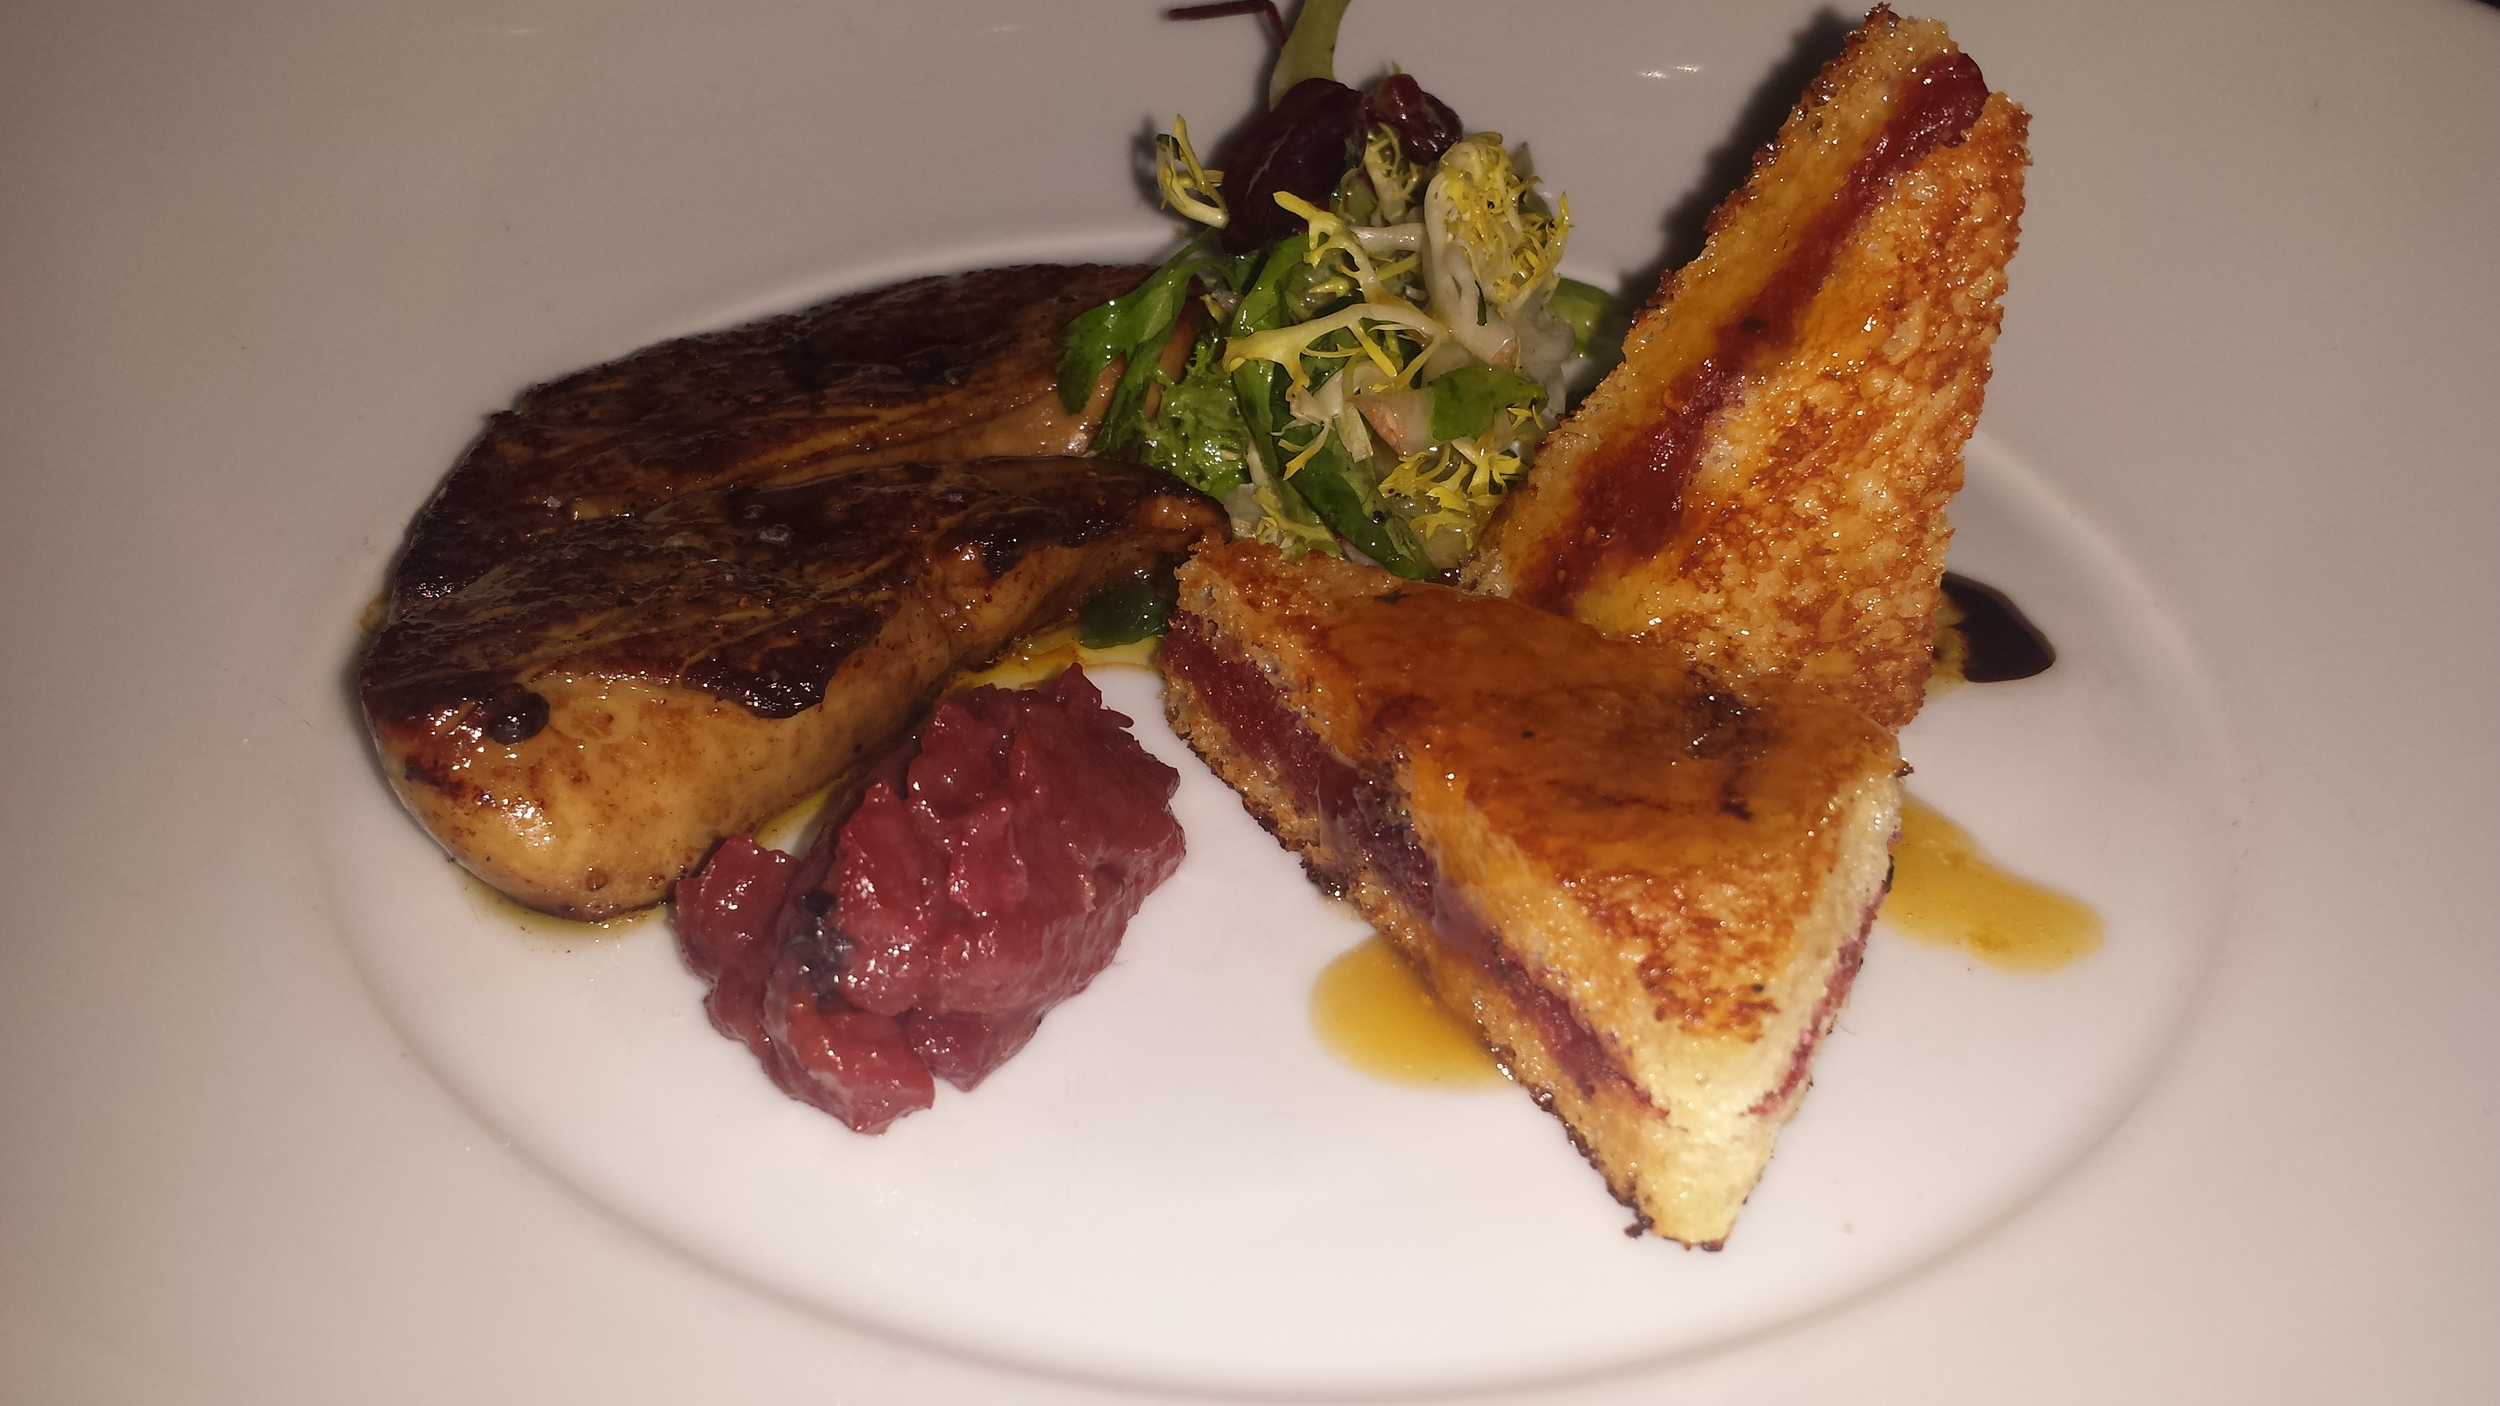 Seared foie gras with fruit compote and stuffed French toast.